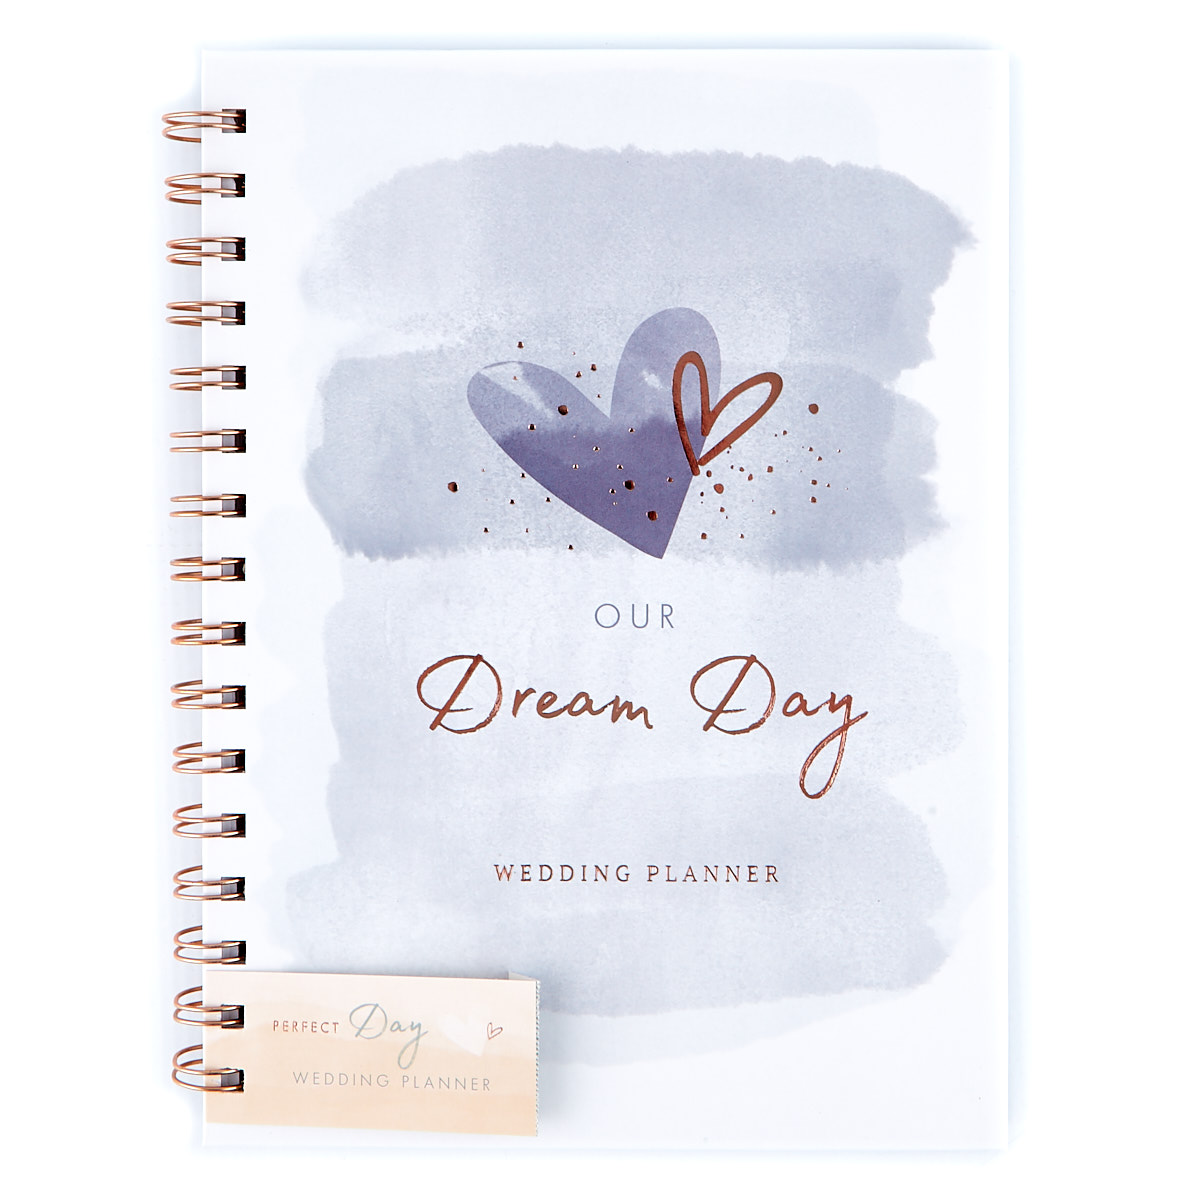 Our Dream Day Wedding Planner - Silver Hearts